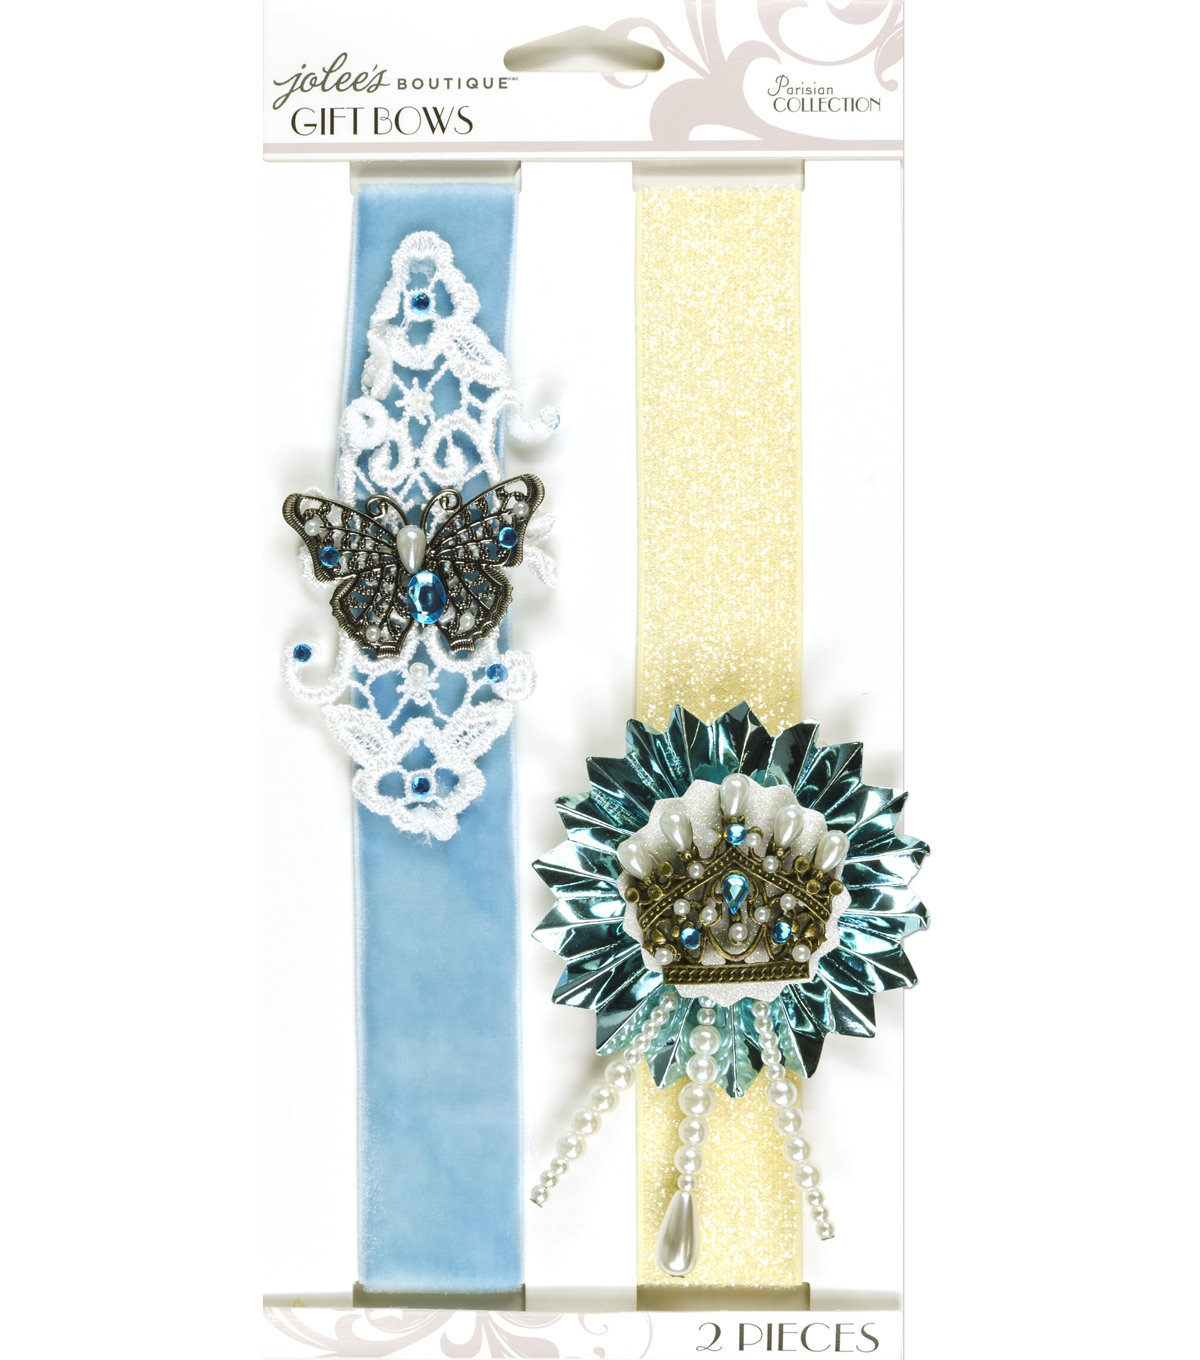 Jolee's Boutique Parisian Soft Blue Embellished Gift Bows